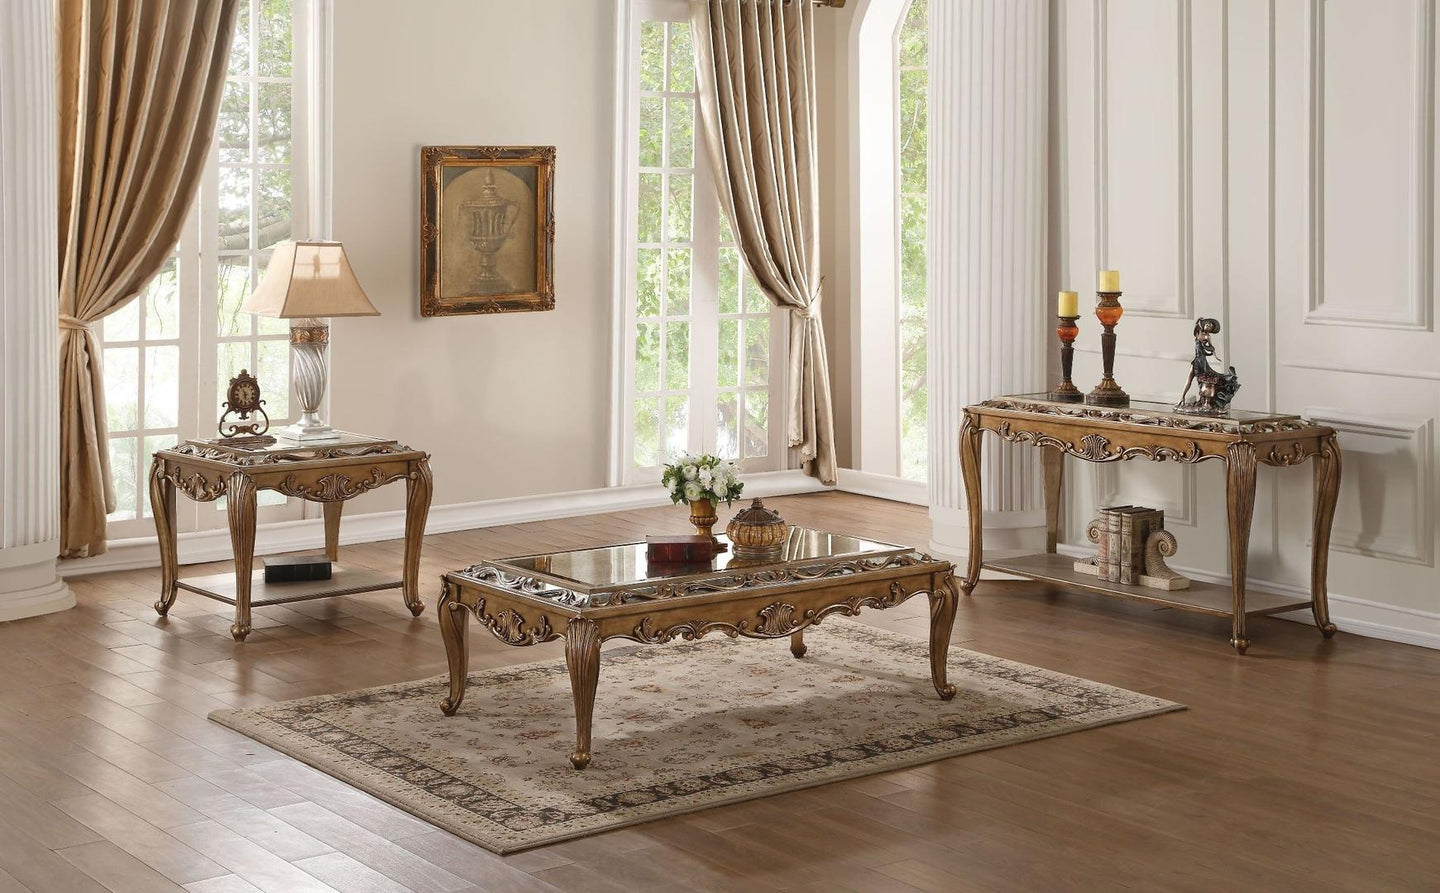 Acme 80690 Orianne Gold Wood Finish Glass Top 3 Piece Coffee Table Set